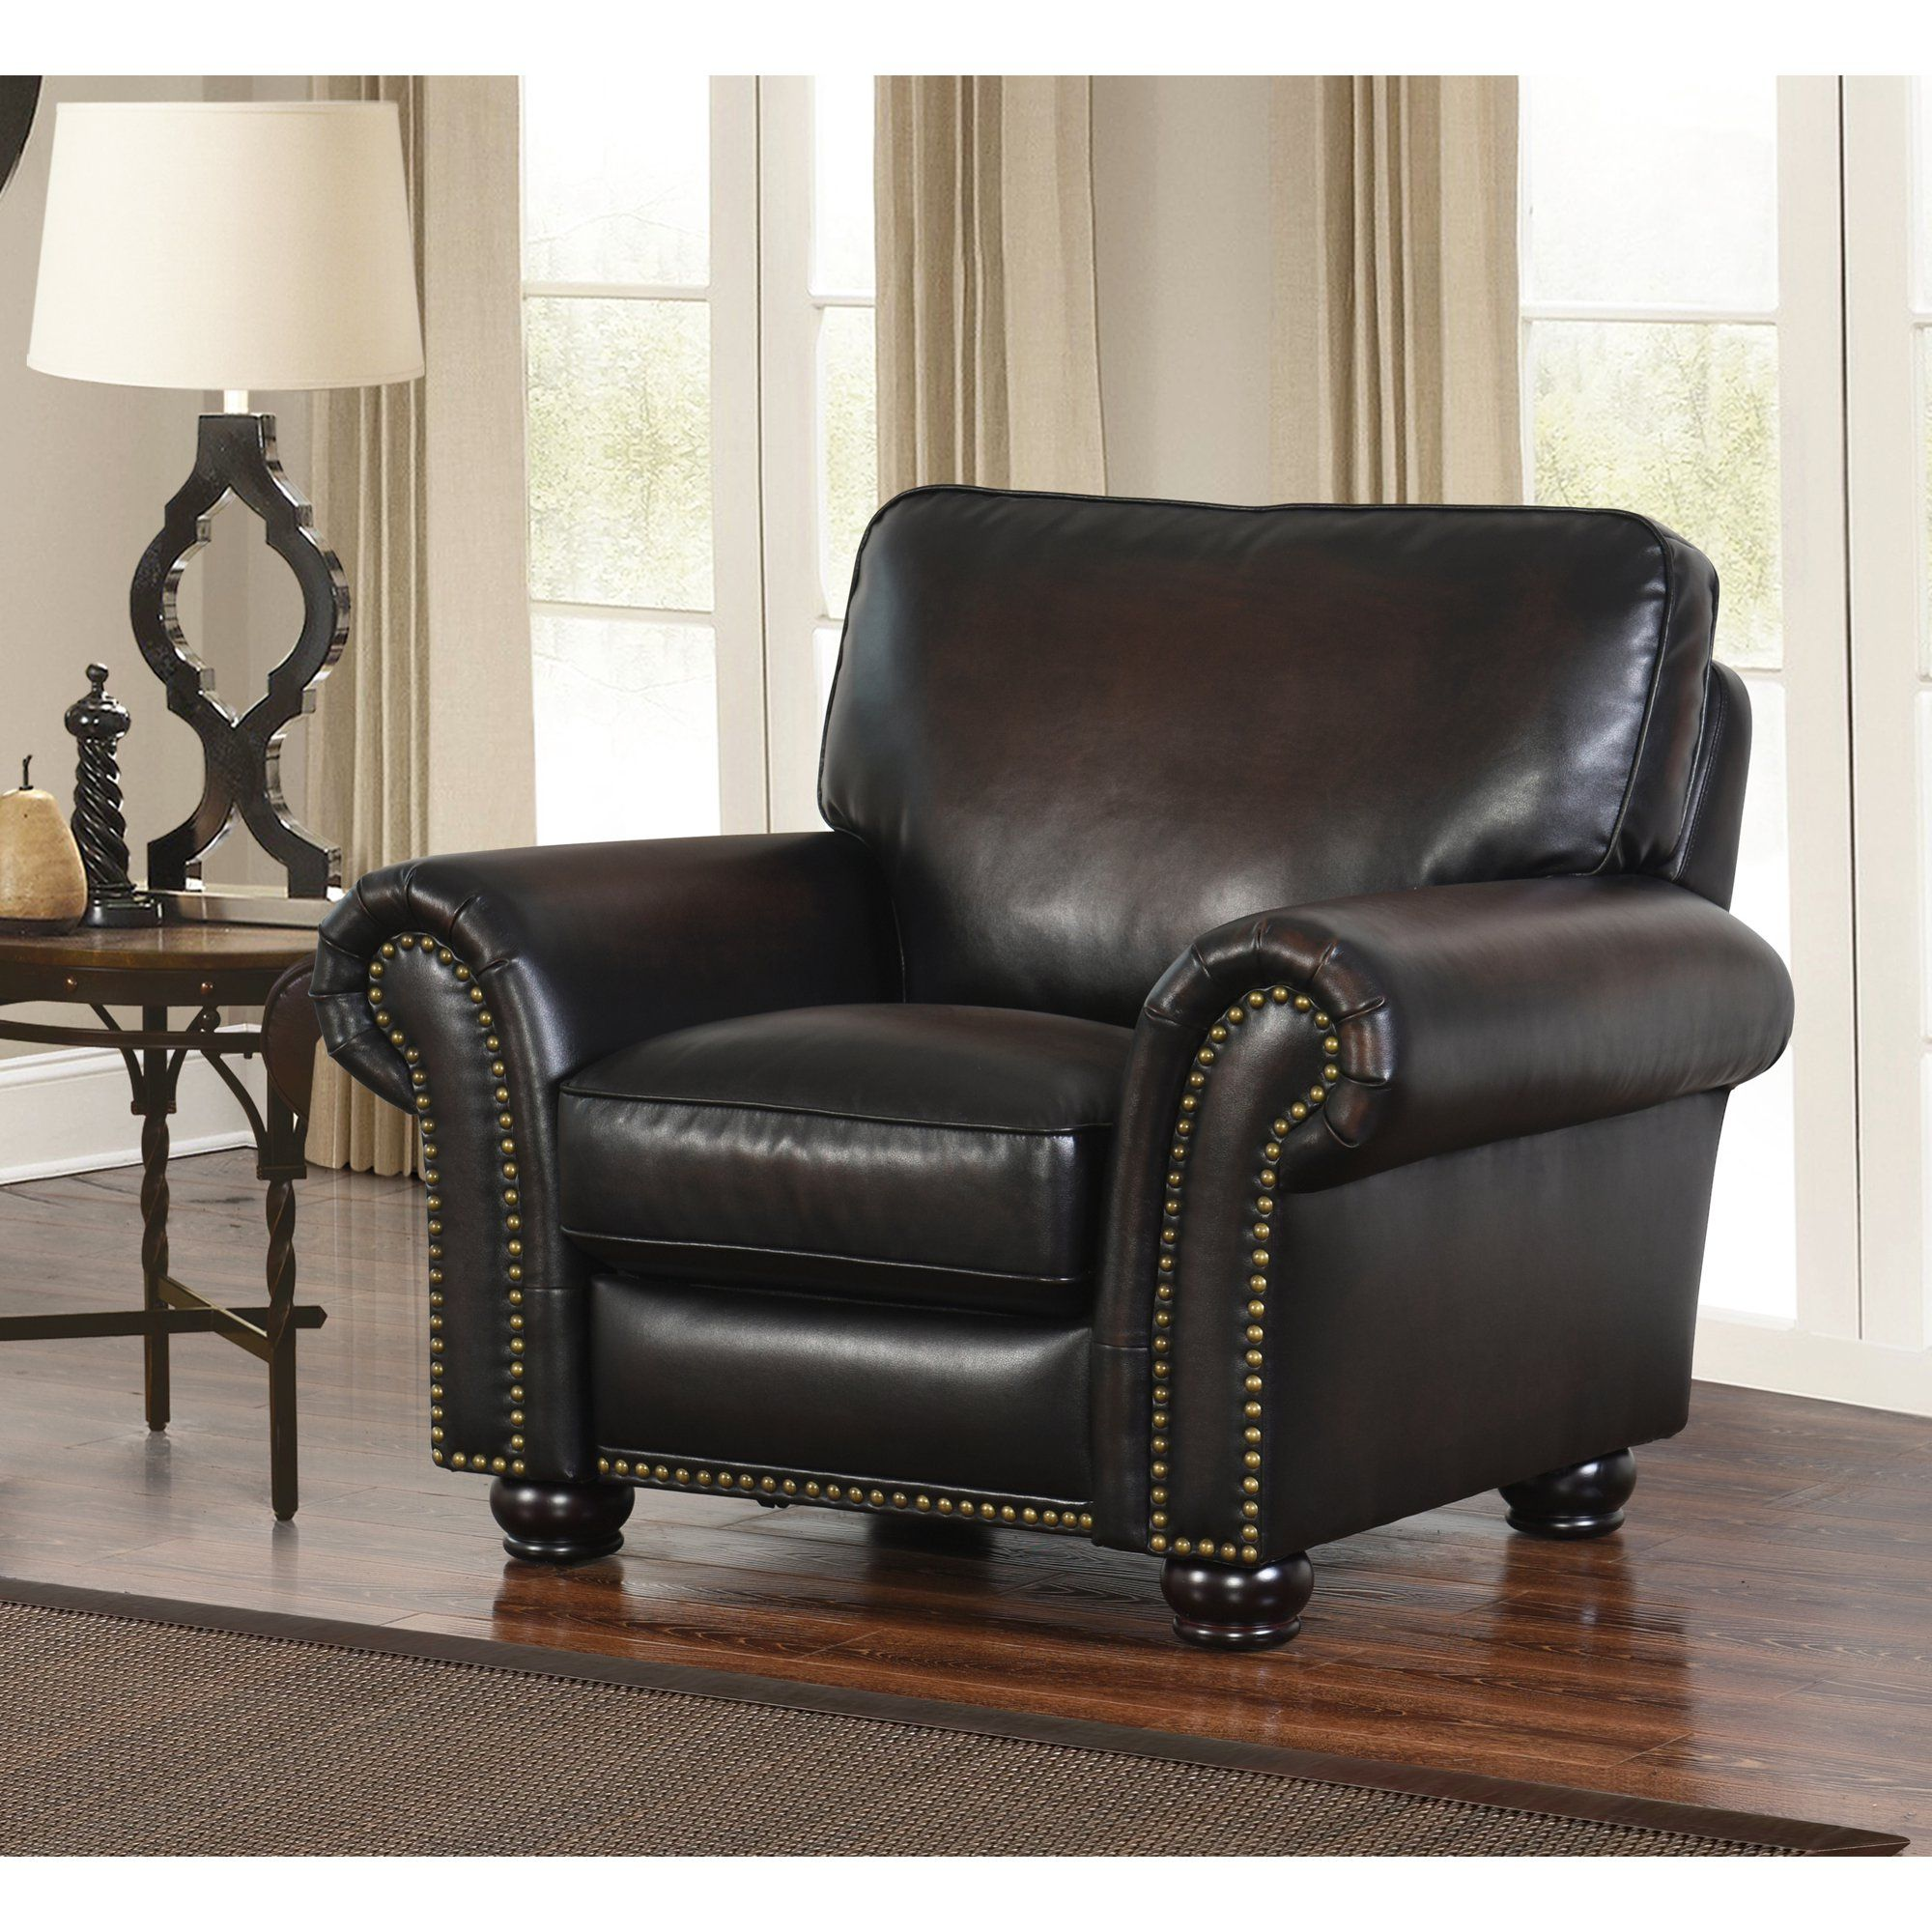 Devon & Claire Jax Hand Rubbed Leather Push Back Recliner